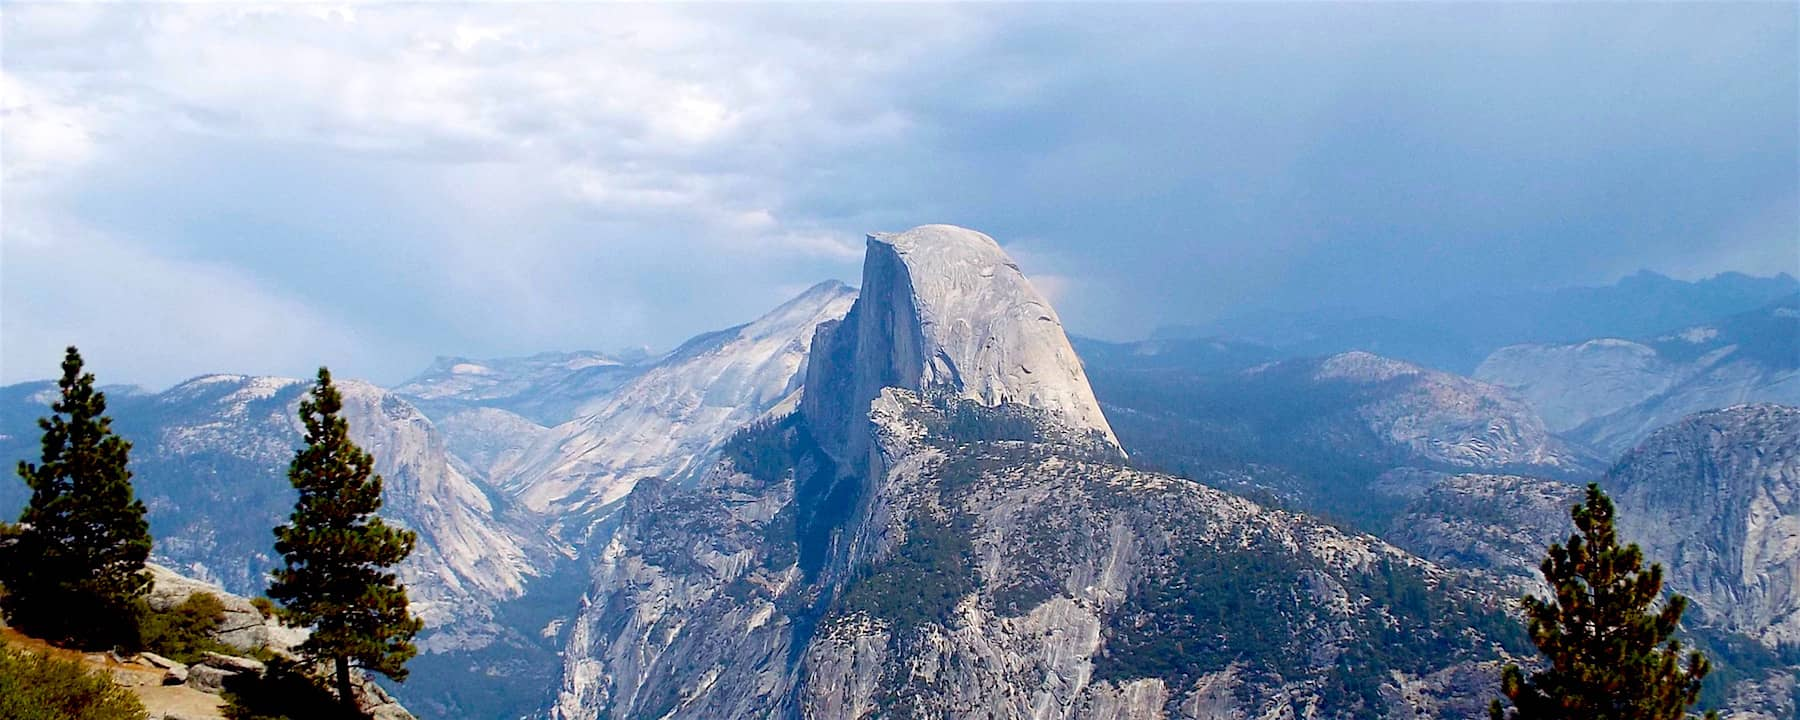 Back to nature in Yosemite National Park